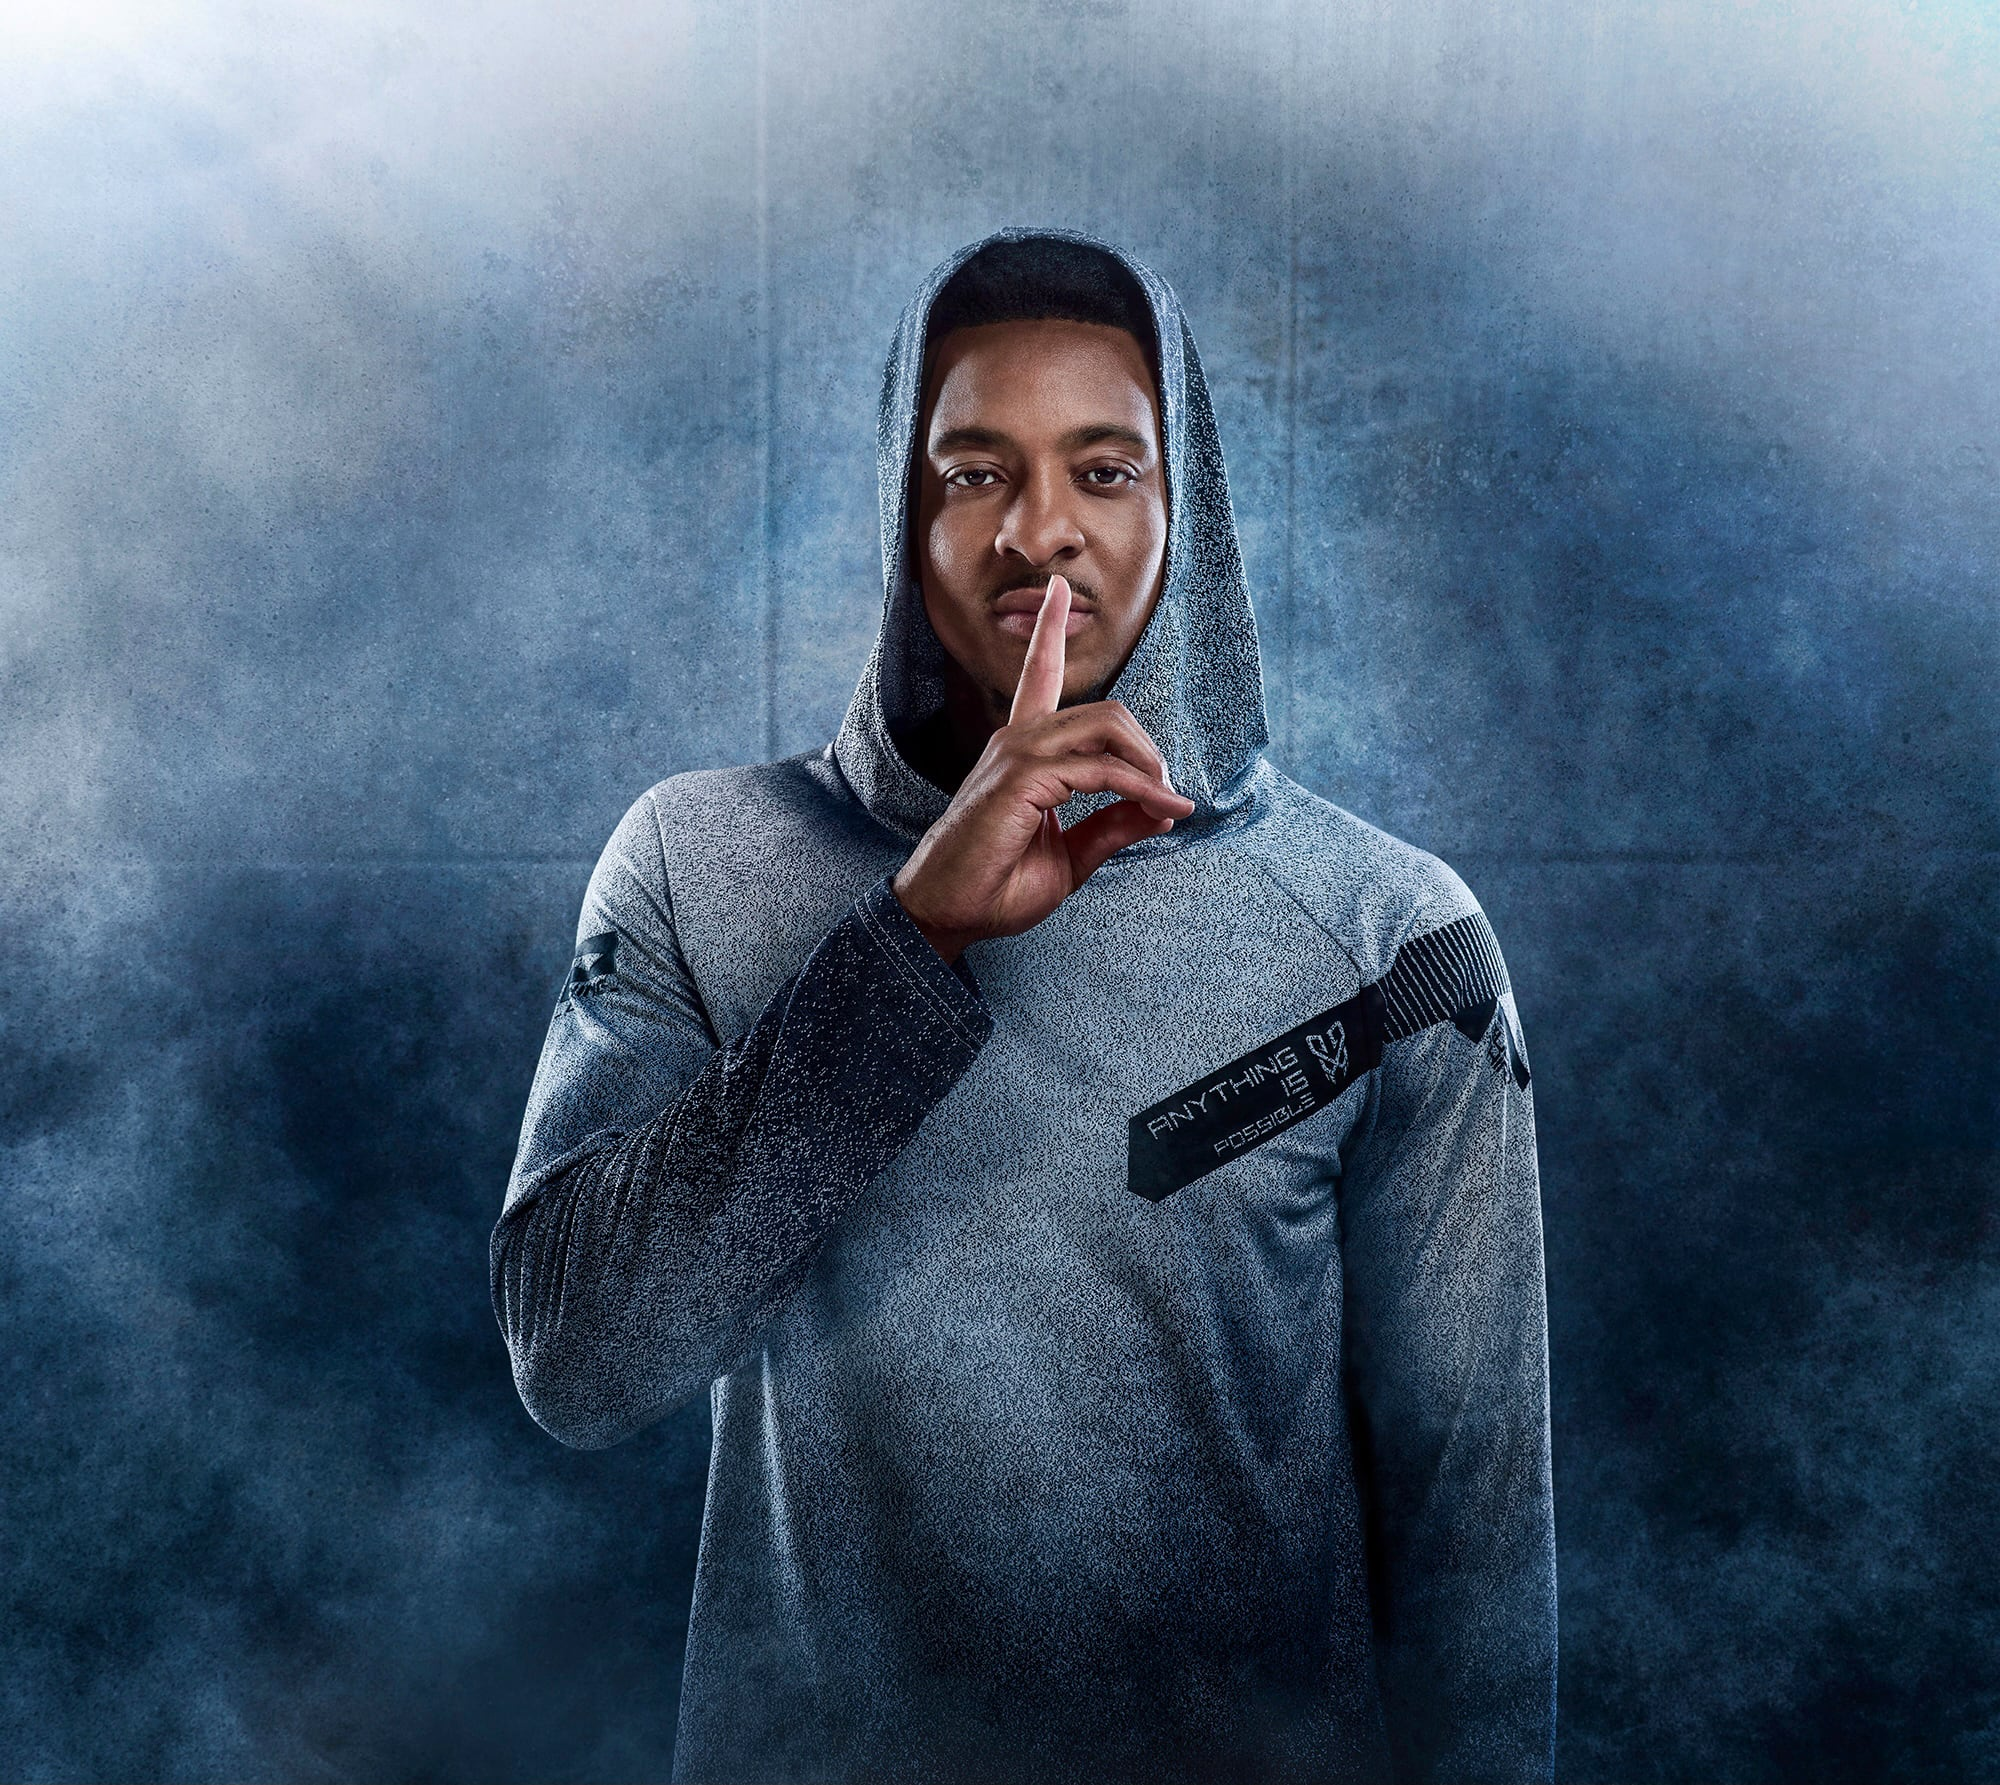 CJ McCollum photographed in China by western photographer Blair Bunting